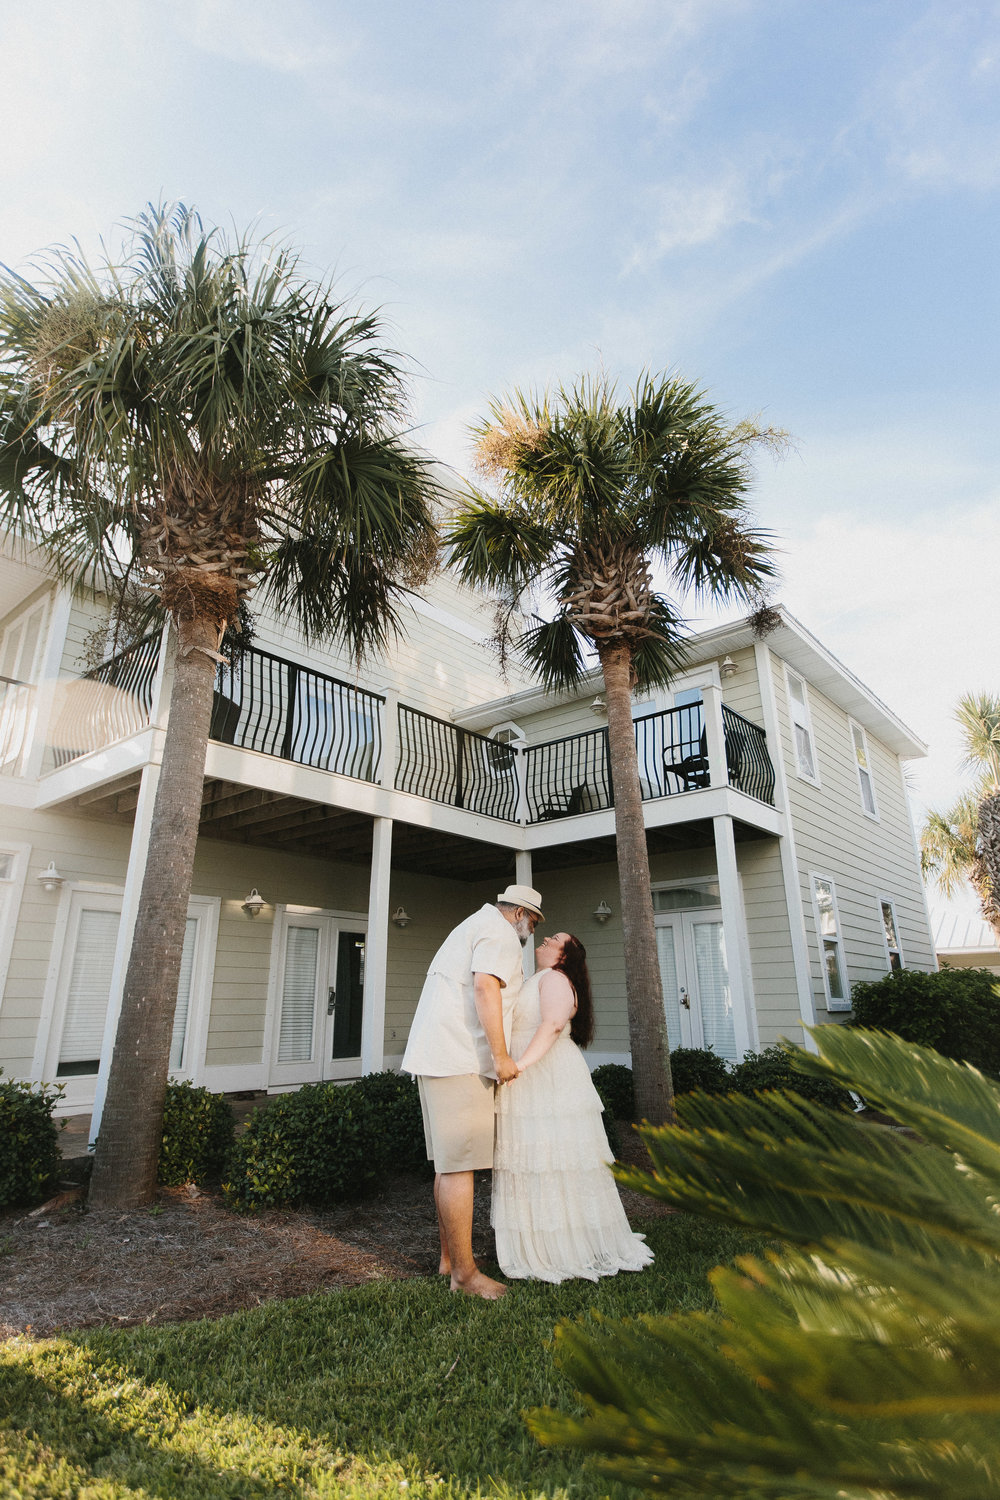 destin_sunset_beach_elopement_intimate_wedding_photographer_florida_documentary_1092.jpg